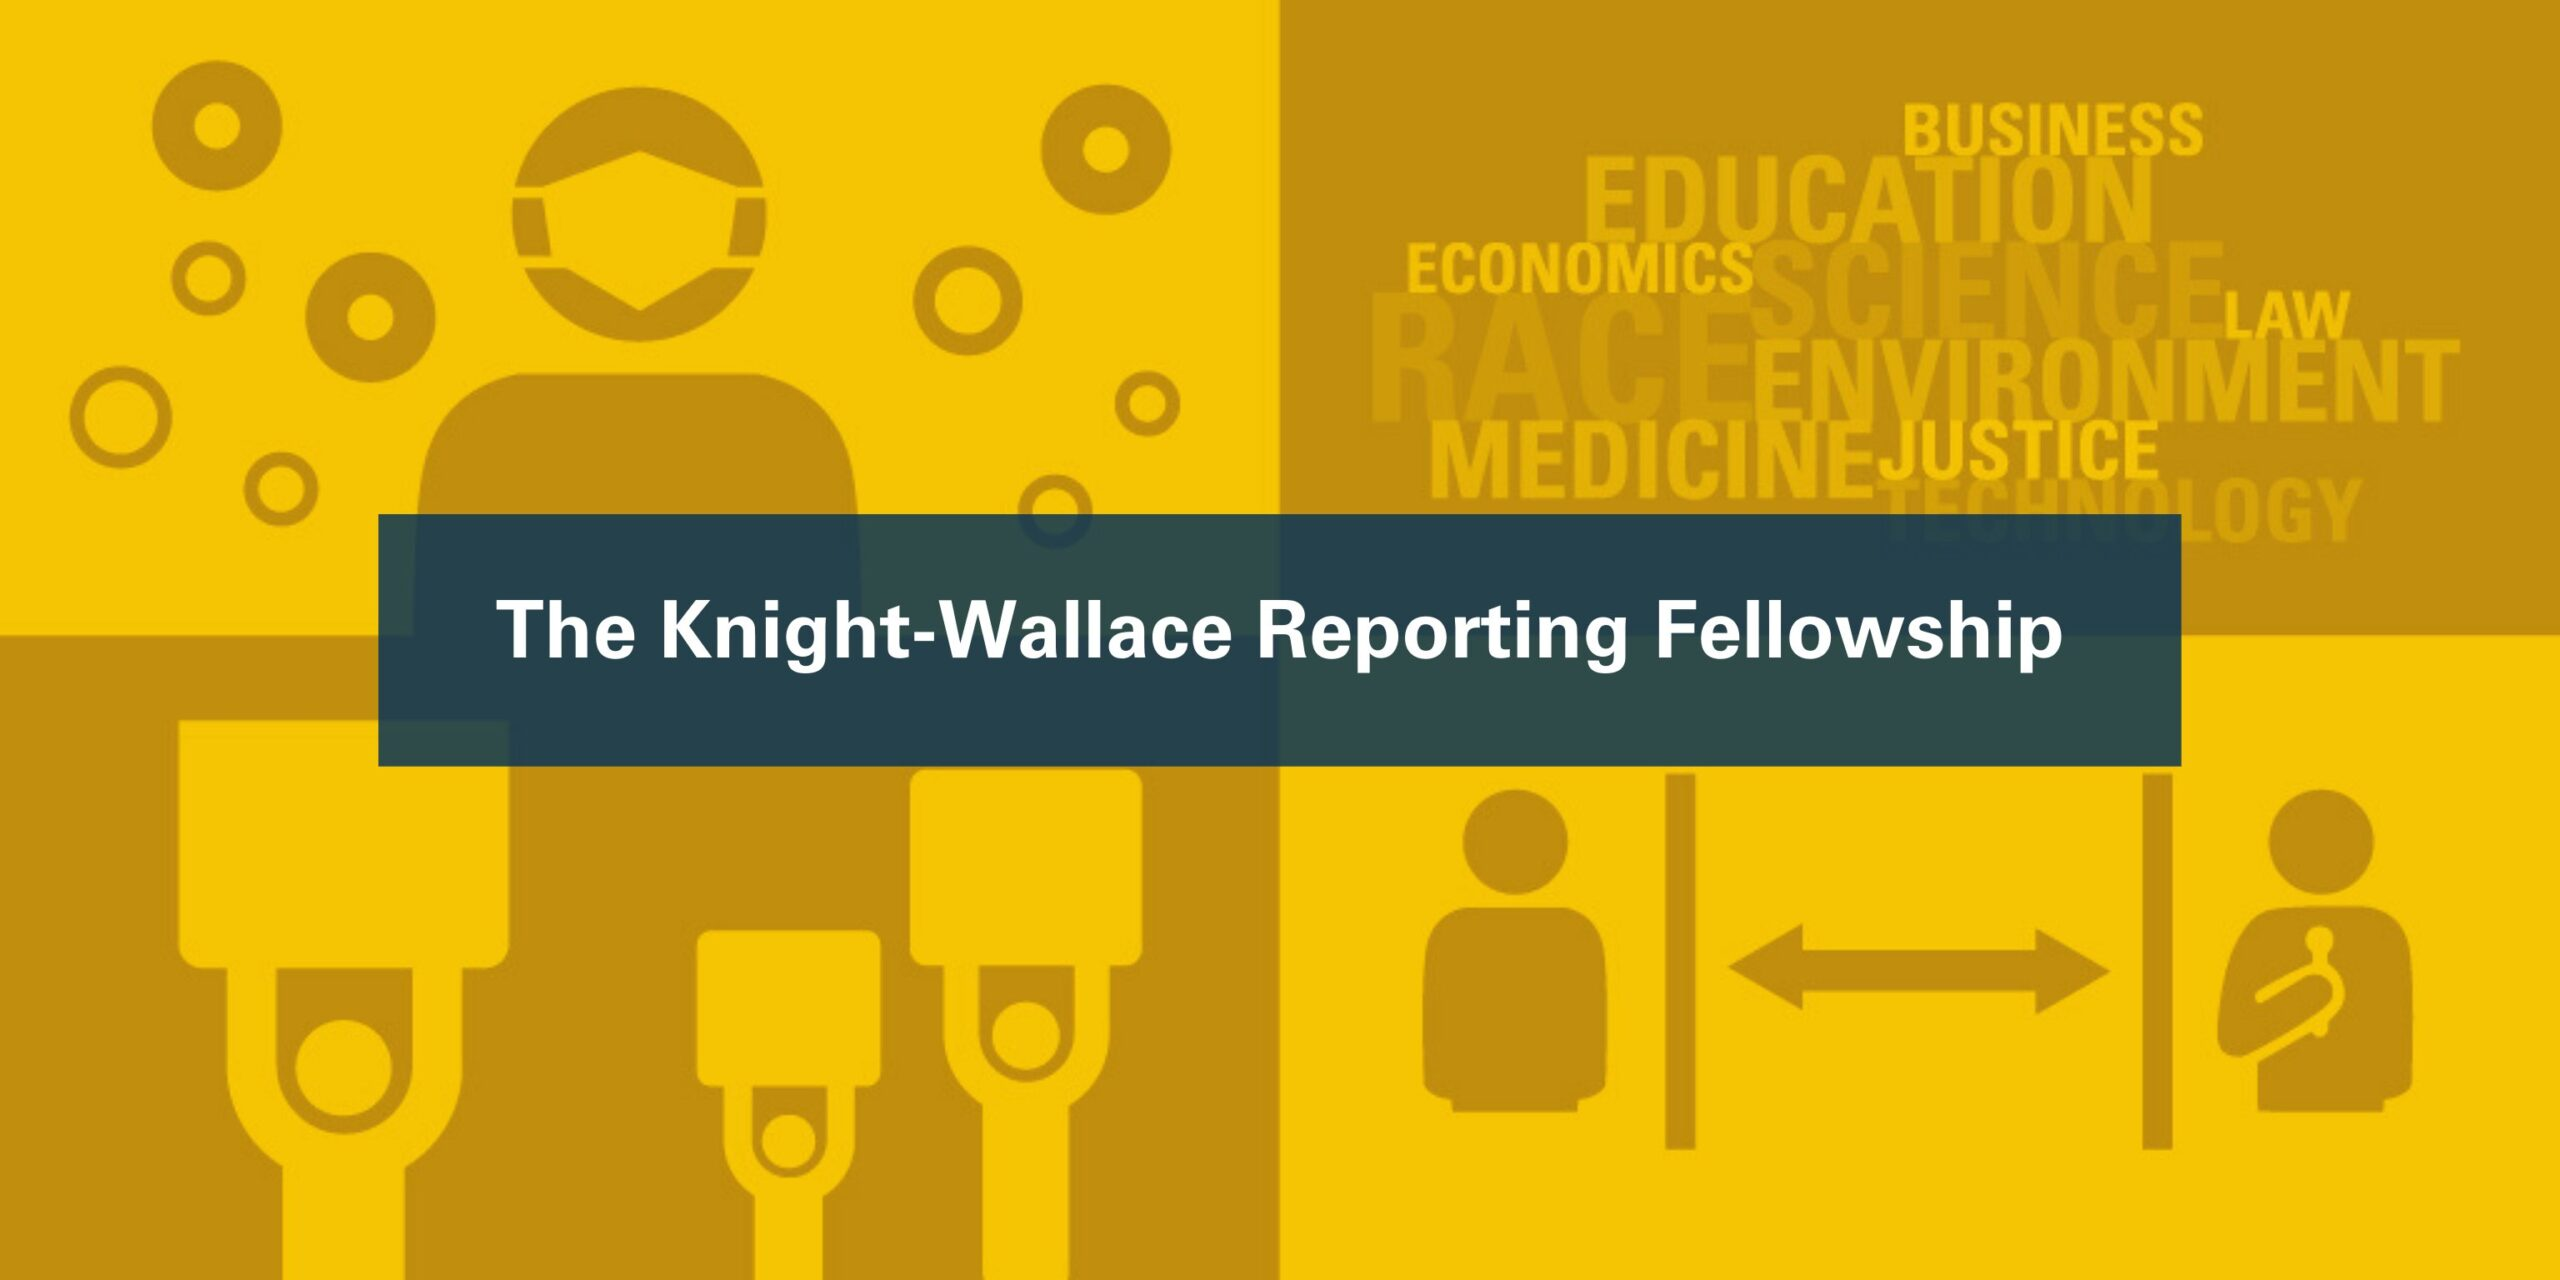 Icons depicting the fellowship. Image credit: Knight-Wallace Fellowships